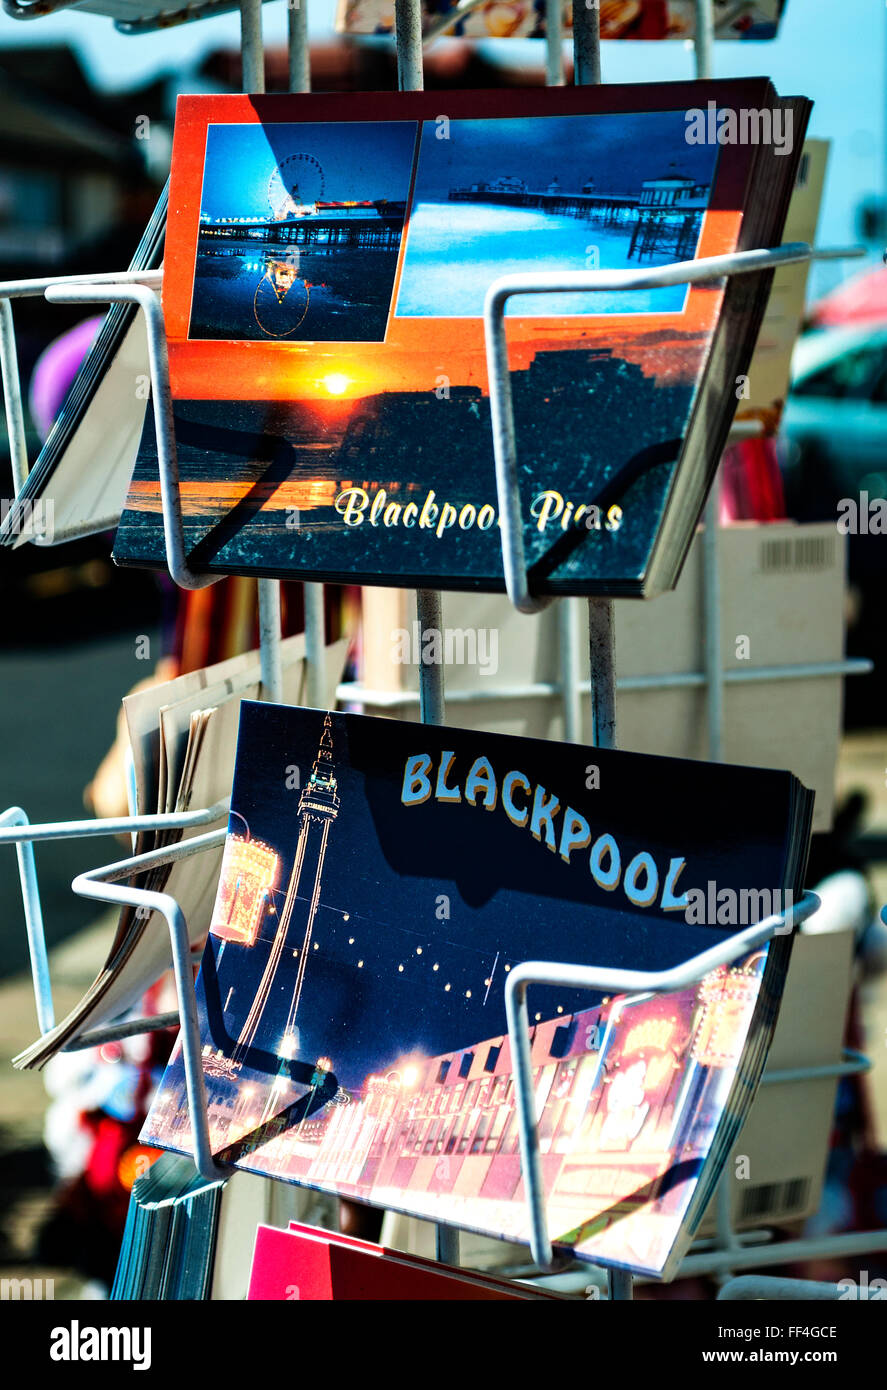 Postcards of Blackpool in Lancashire, England, UK - Stock Image